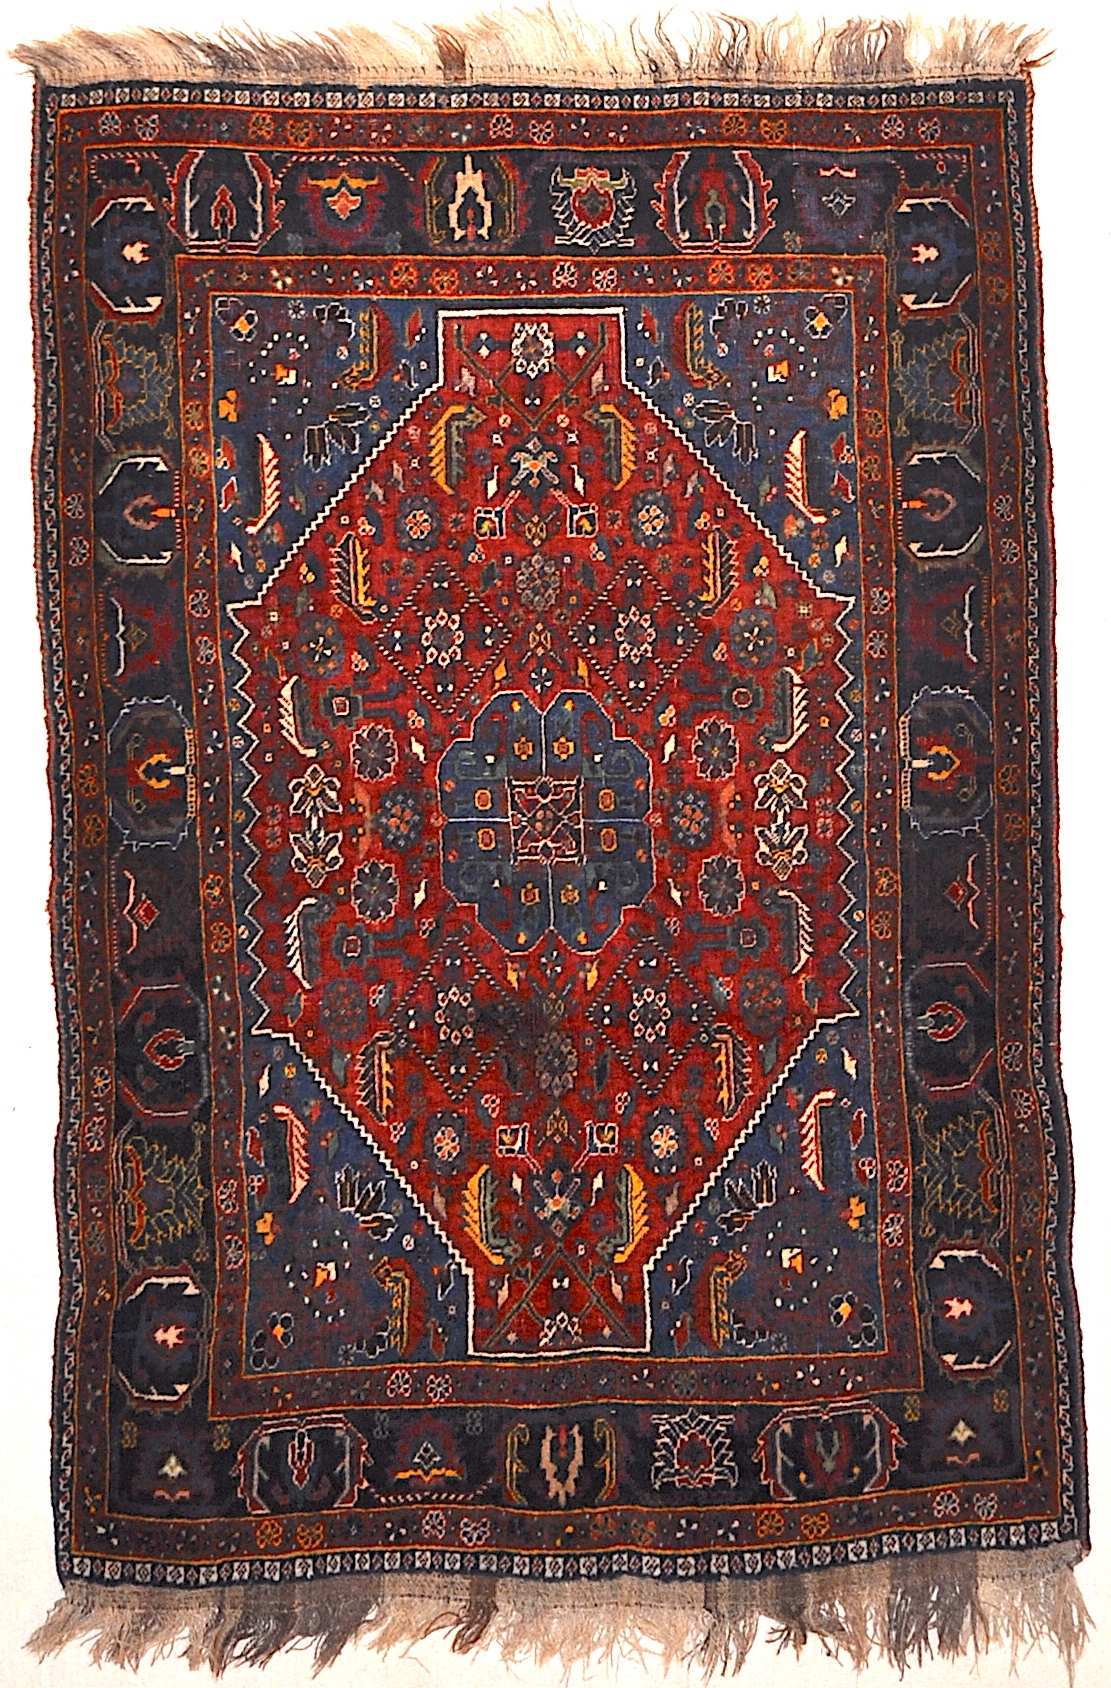 Antique Persian Qashqai Woven Circa 1900 Rug Genuine Authentic Intricate Woven Carpet Art Santa Barbara Design Center Rugs and More